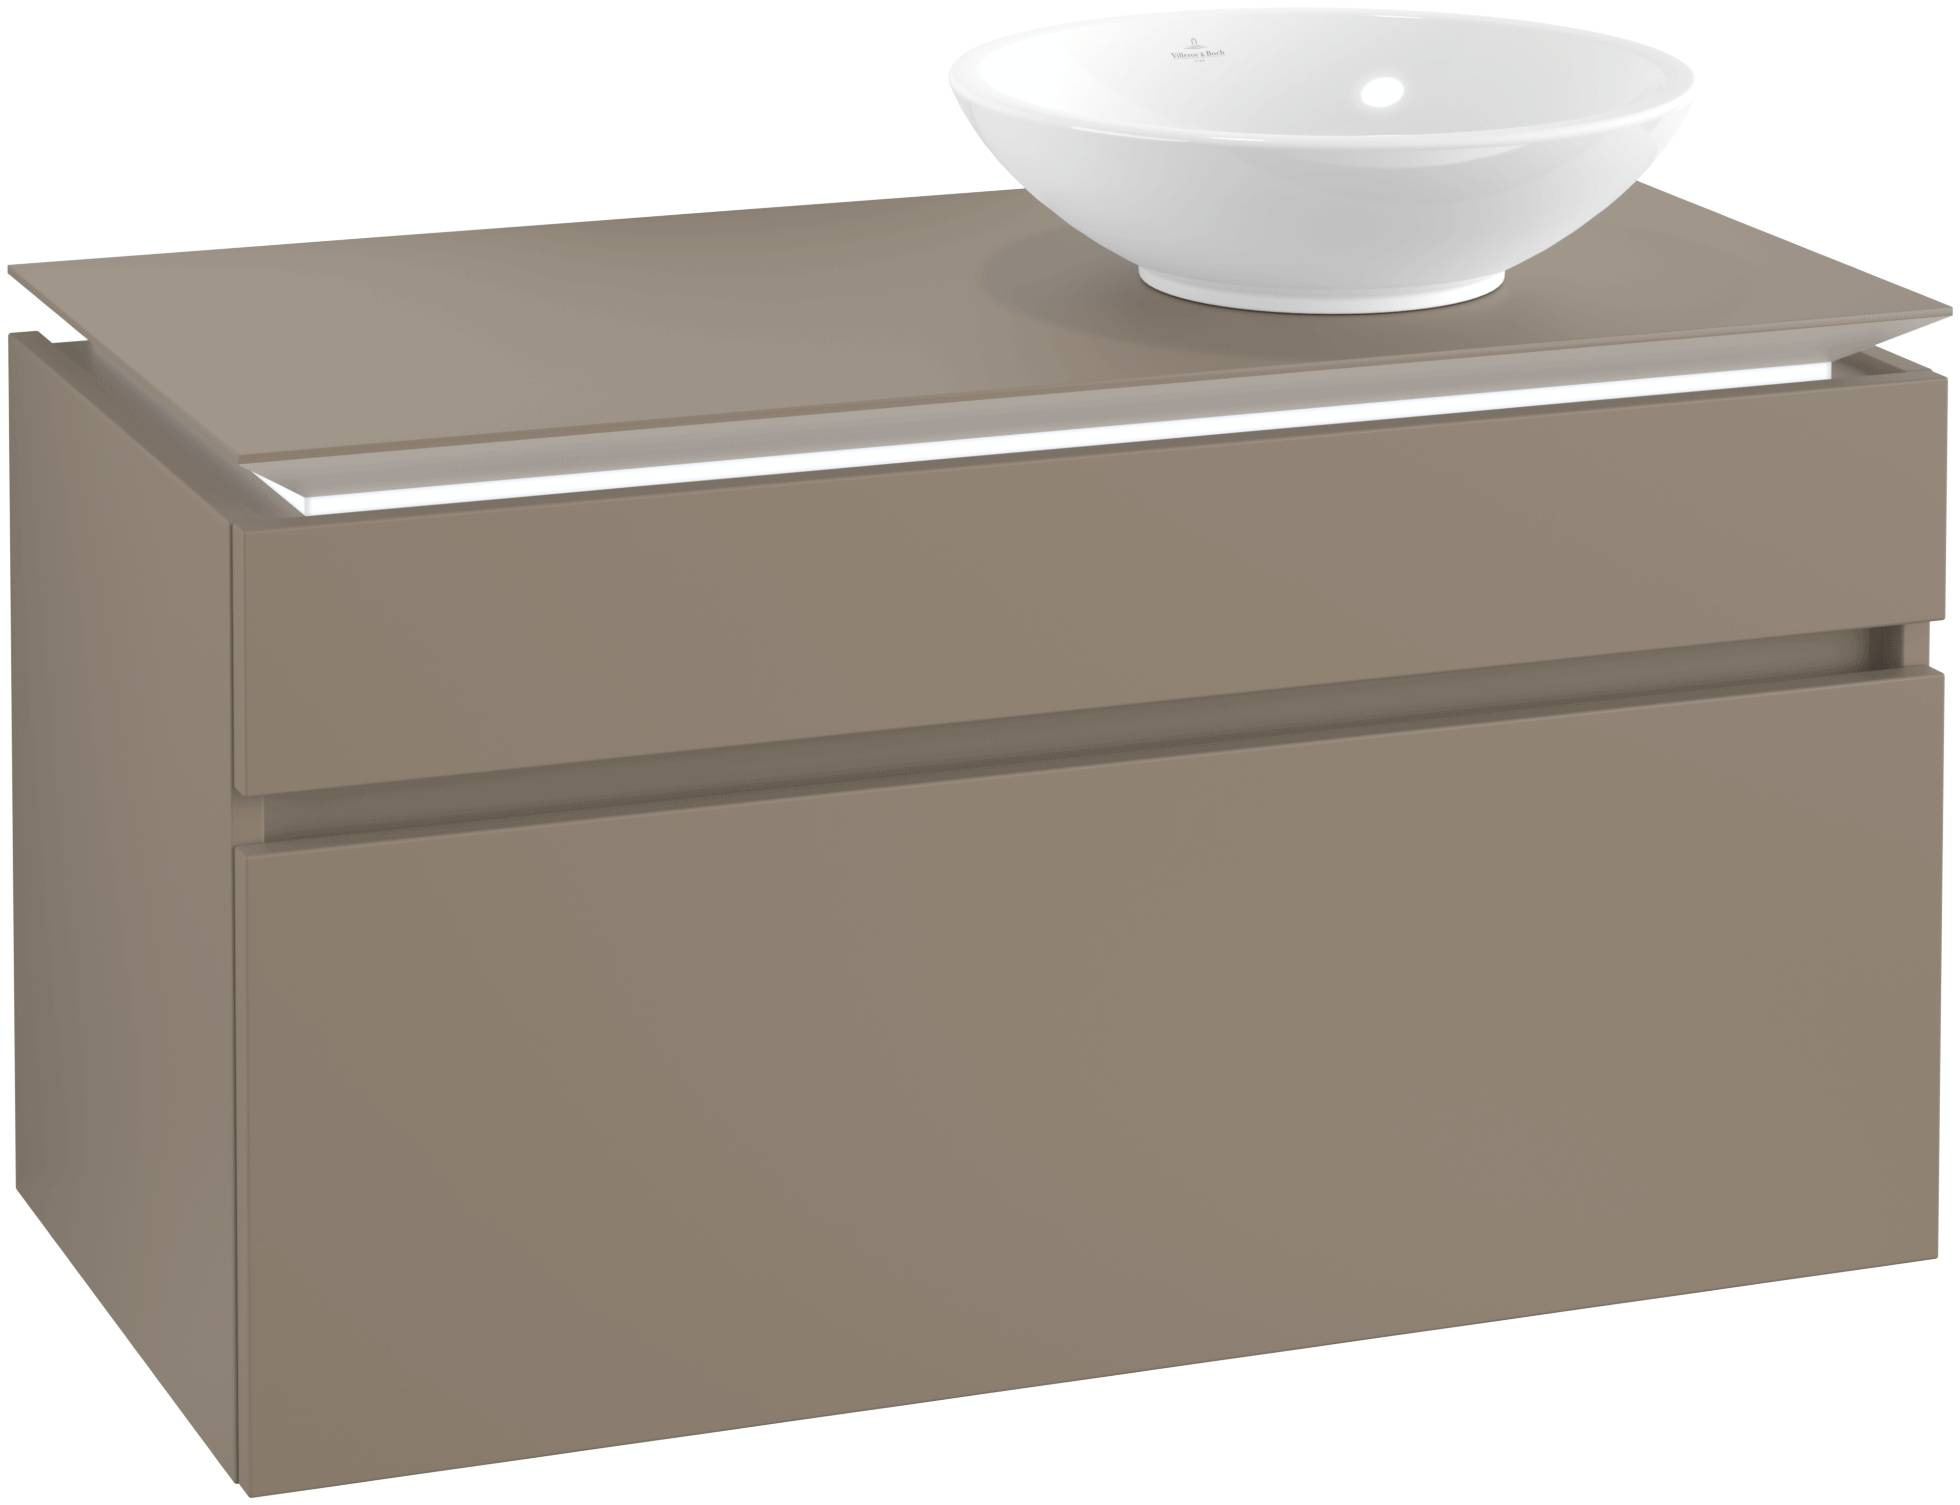 Villeroy & Boch Villeroy & Boch Legato - Meuble sous lavabo with 2 drawers & 1 cut-out right 1000 x 550 x 500mm truffle grey